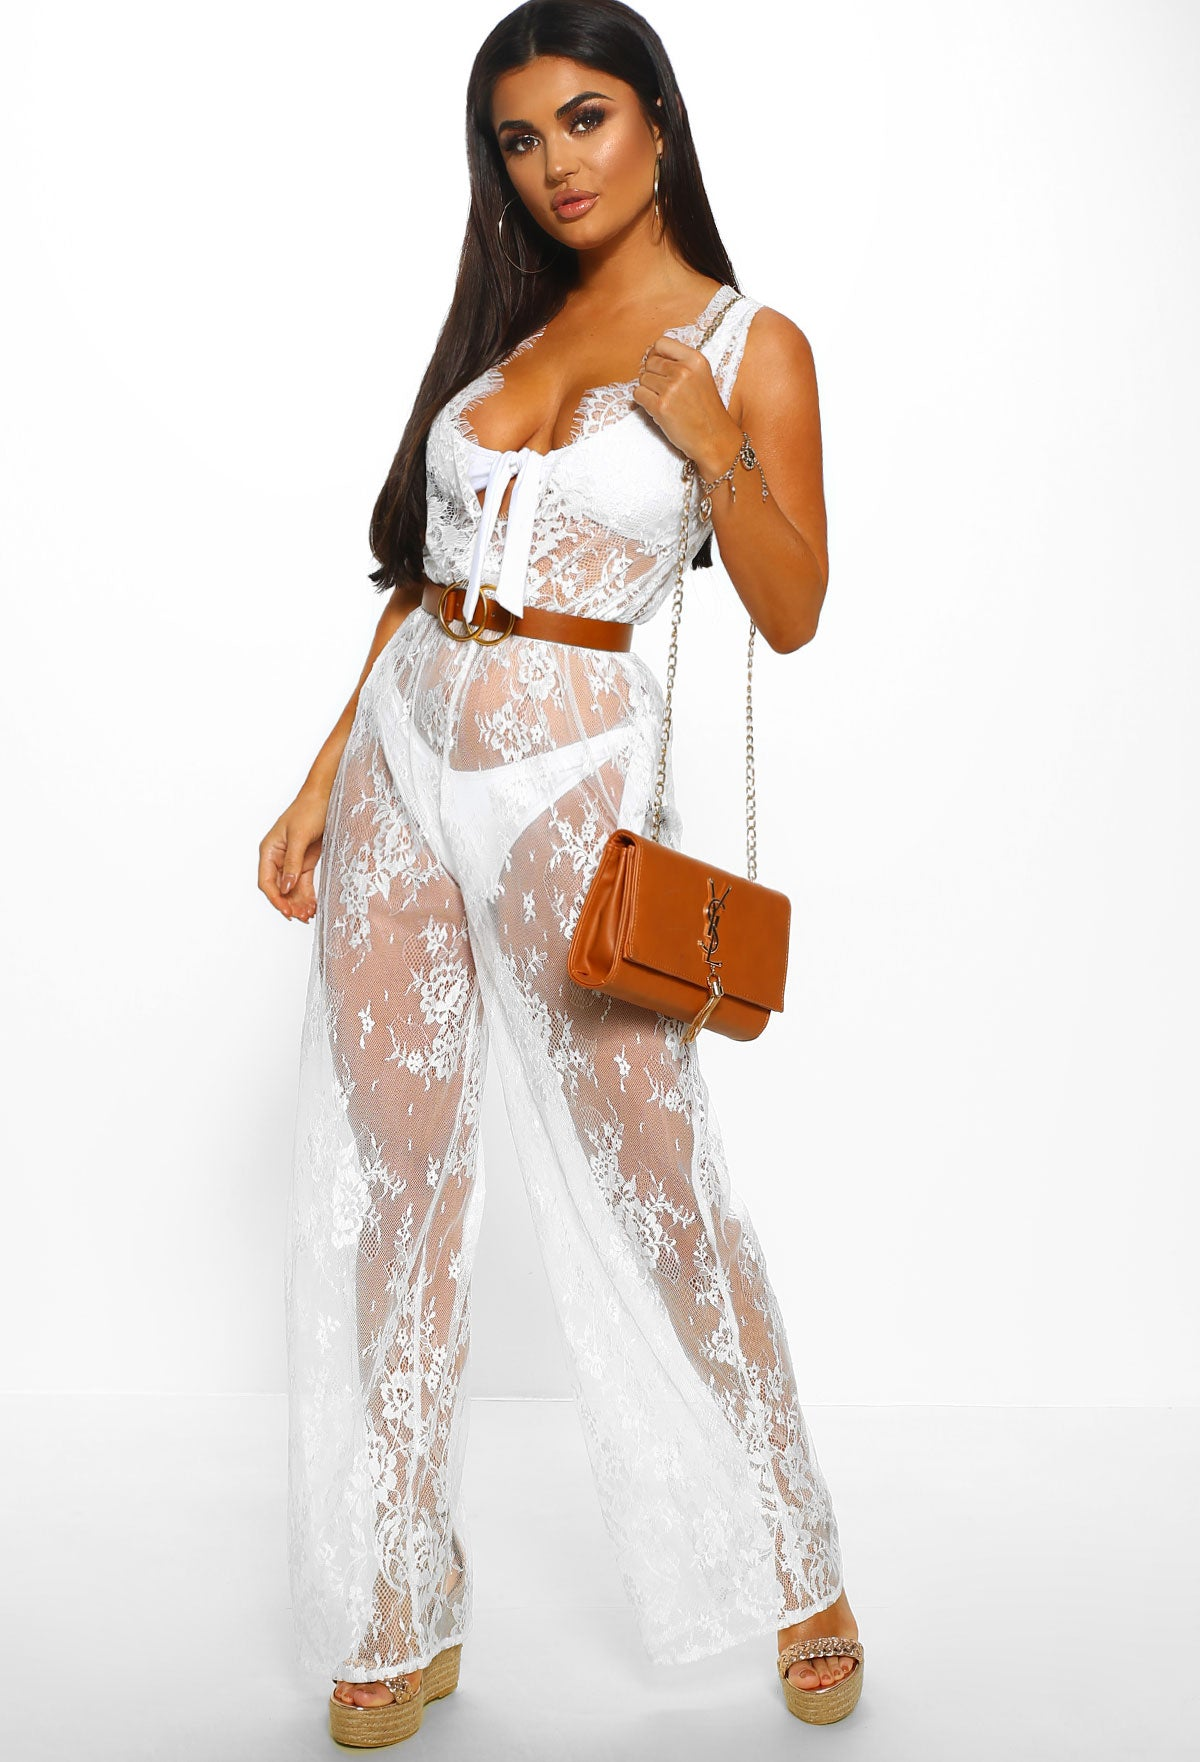 adfedfc87526d Beach Club White Sheer Lace Wide Leg Jumpsuit Cover Up – Pink ...